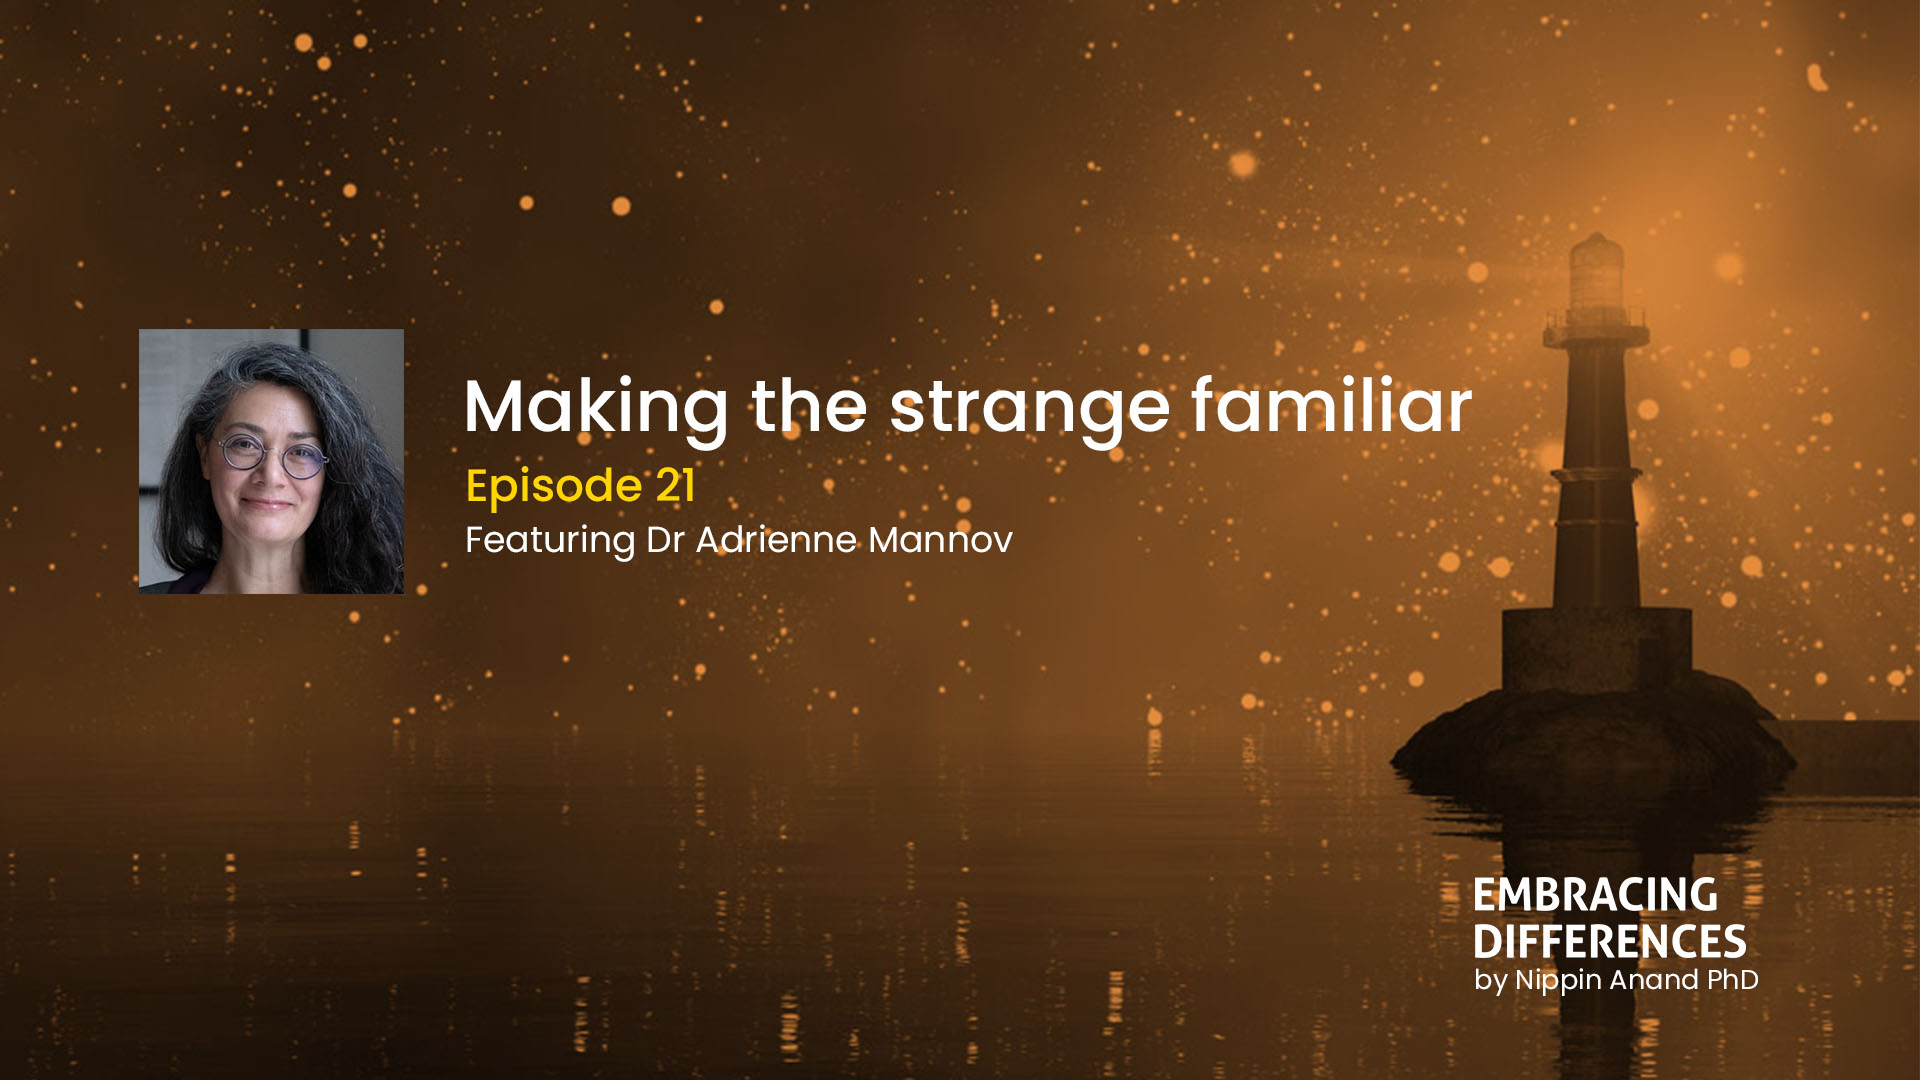 Making the strange familiar: A conversation with Dr Adrienne Mannov about social anthropology